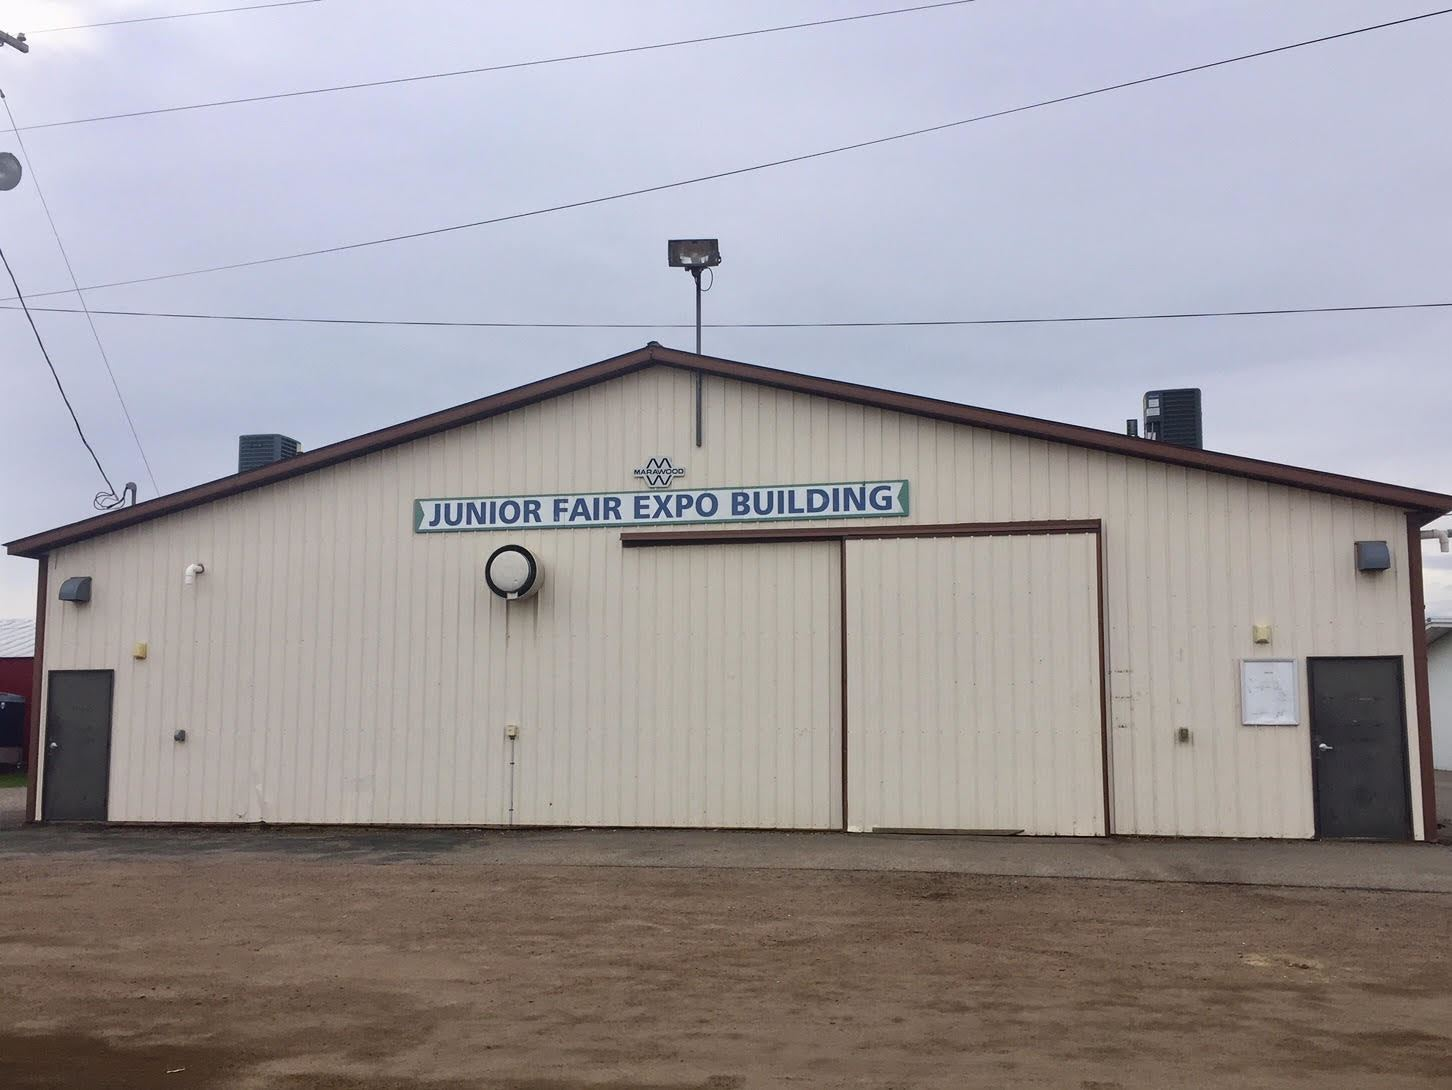 Junior Fair Expo Building